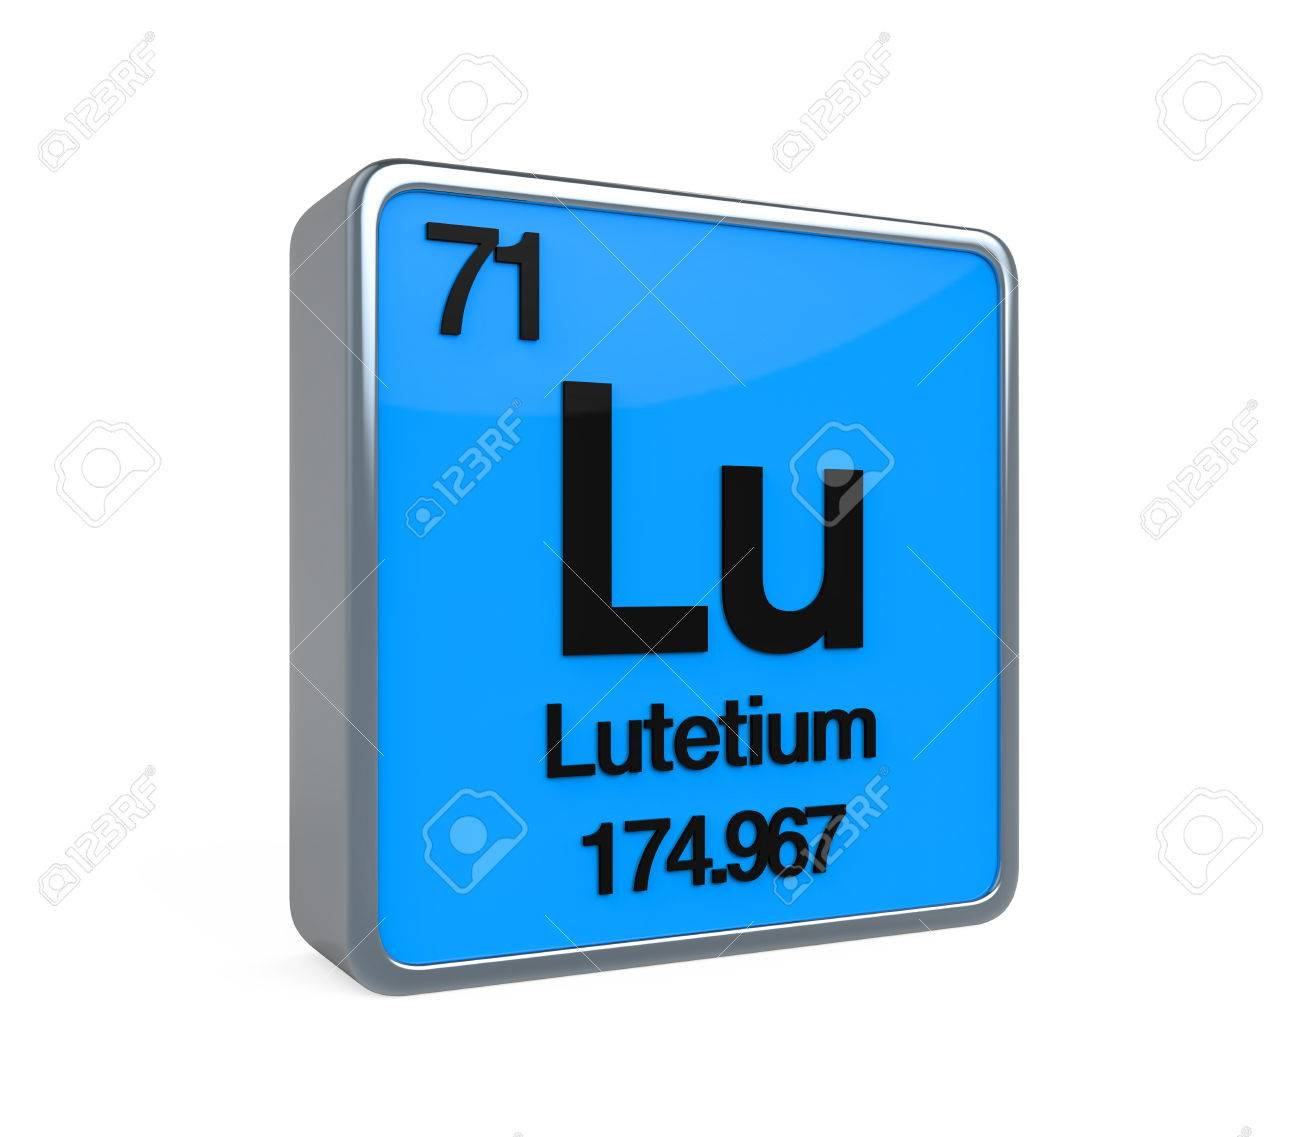 Lutetium periodic table gallery periodic table images periodic table lutetium choice image periodic table images lutetium periodic table image collections periodic table images gamestrikefo Images